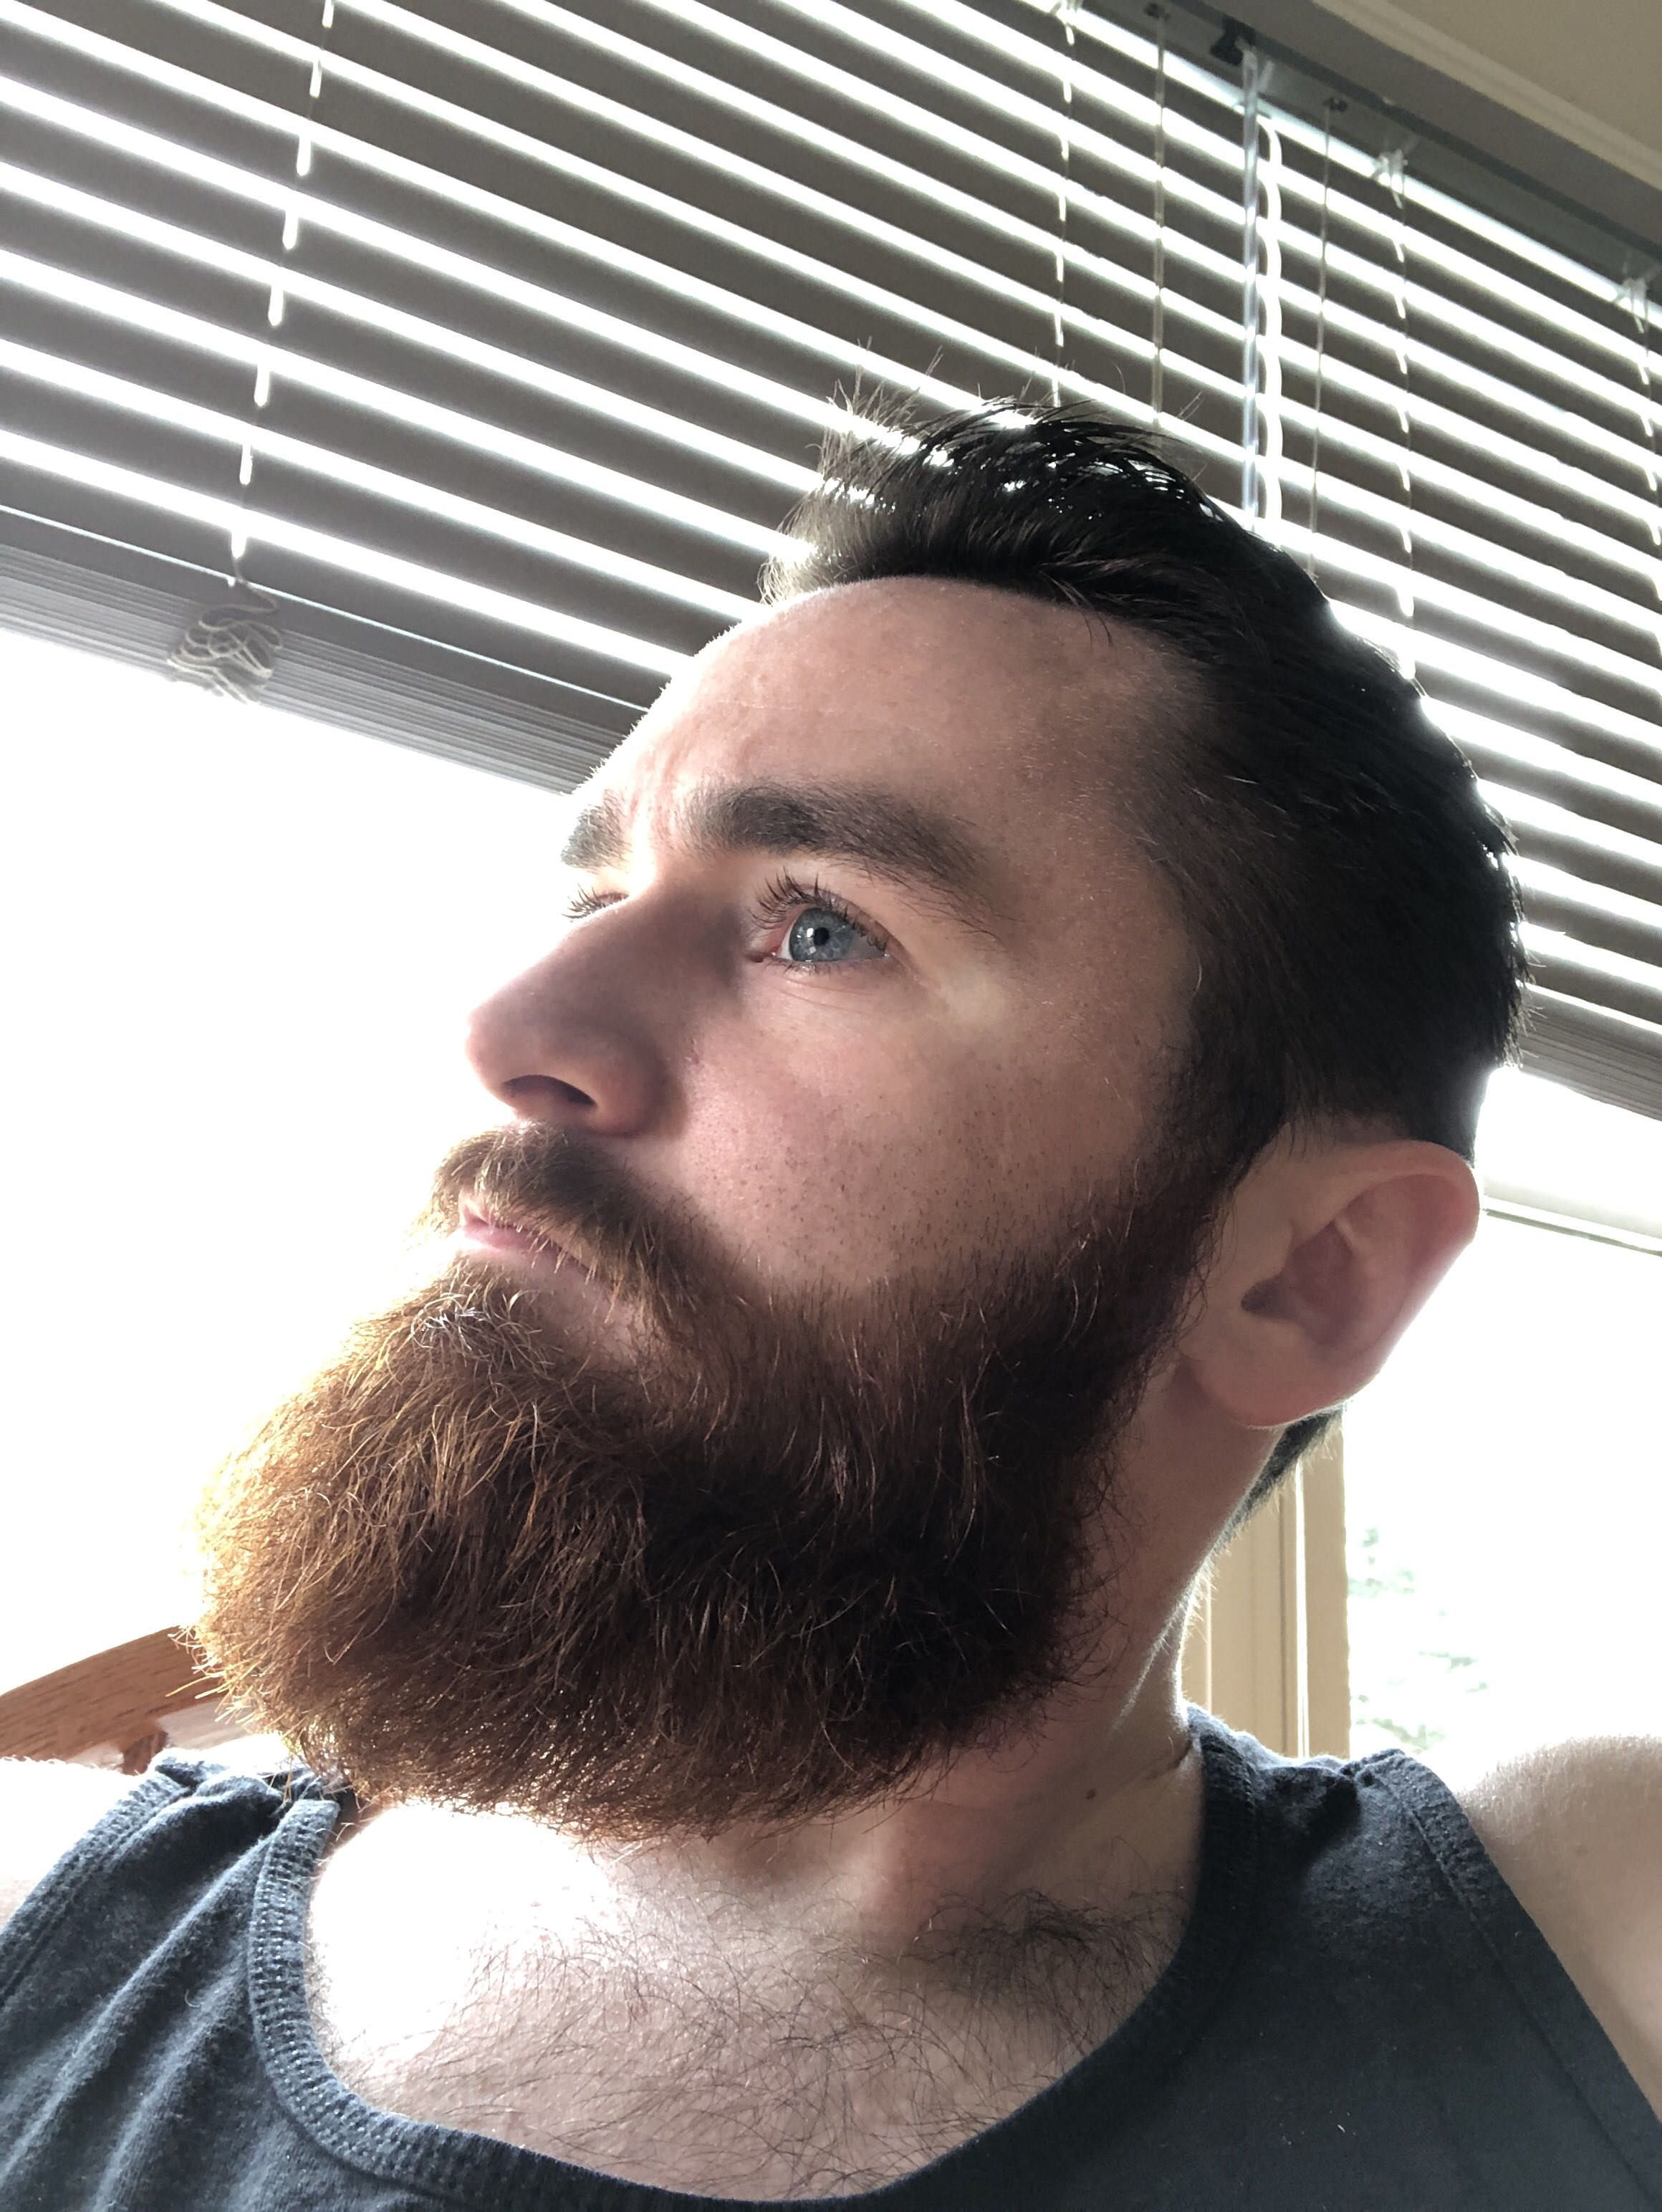 The Great Norse Gods Have Blessed Me Beard Hairstyle Beard Styles For Men Beard And Mustache Styles